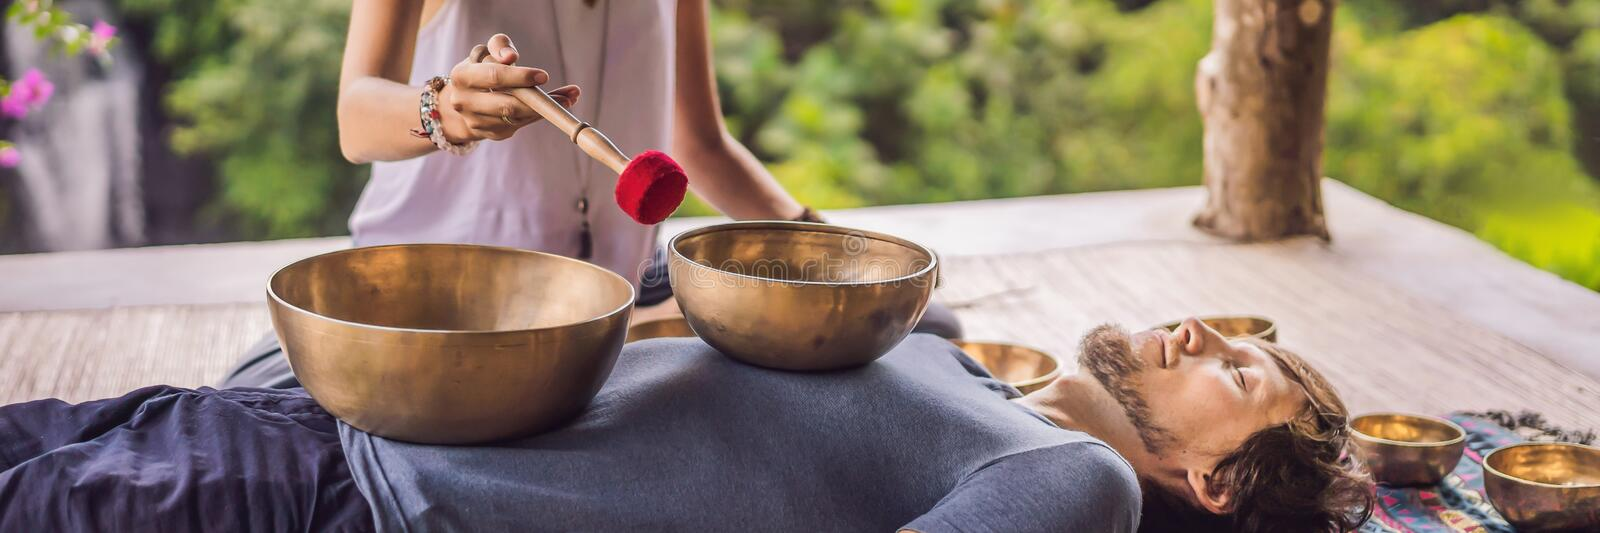 BANNER, LONG FORMAT Nepal Buddha copper singing bowl at spa salon. Young beautiful man doing massage therapy singing. BANNER, LONG FORMAT Nepal Buddha copper royalty free stock images